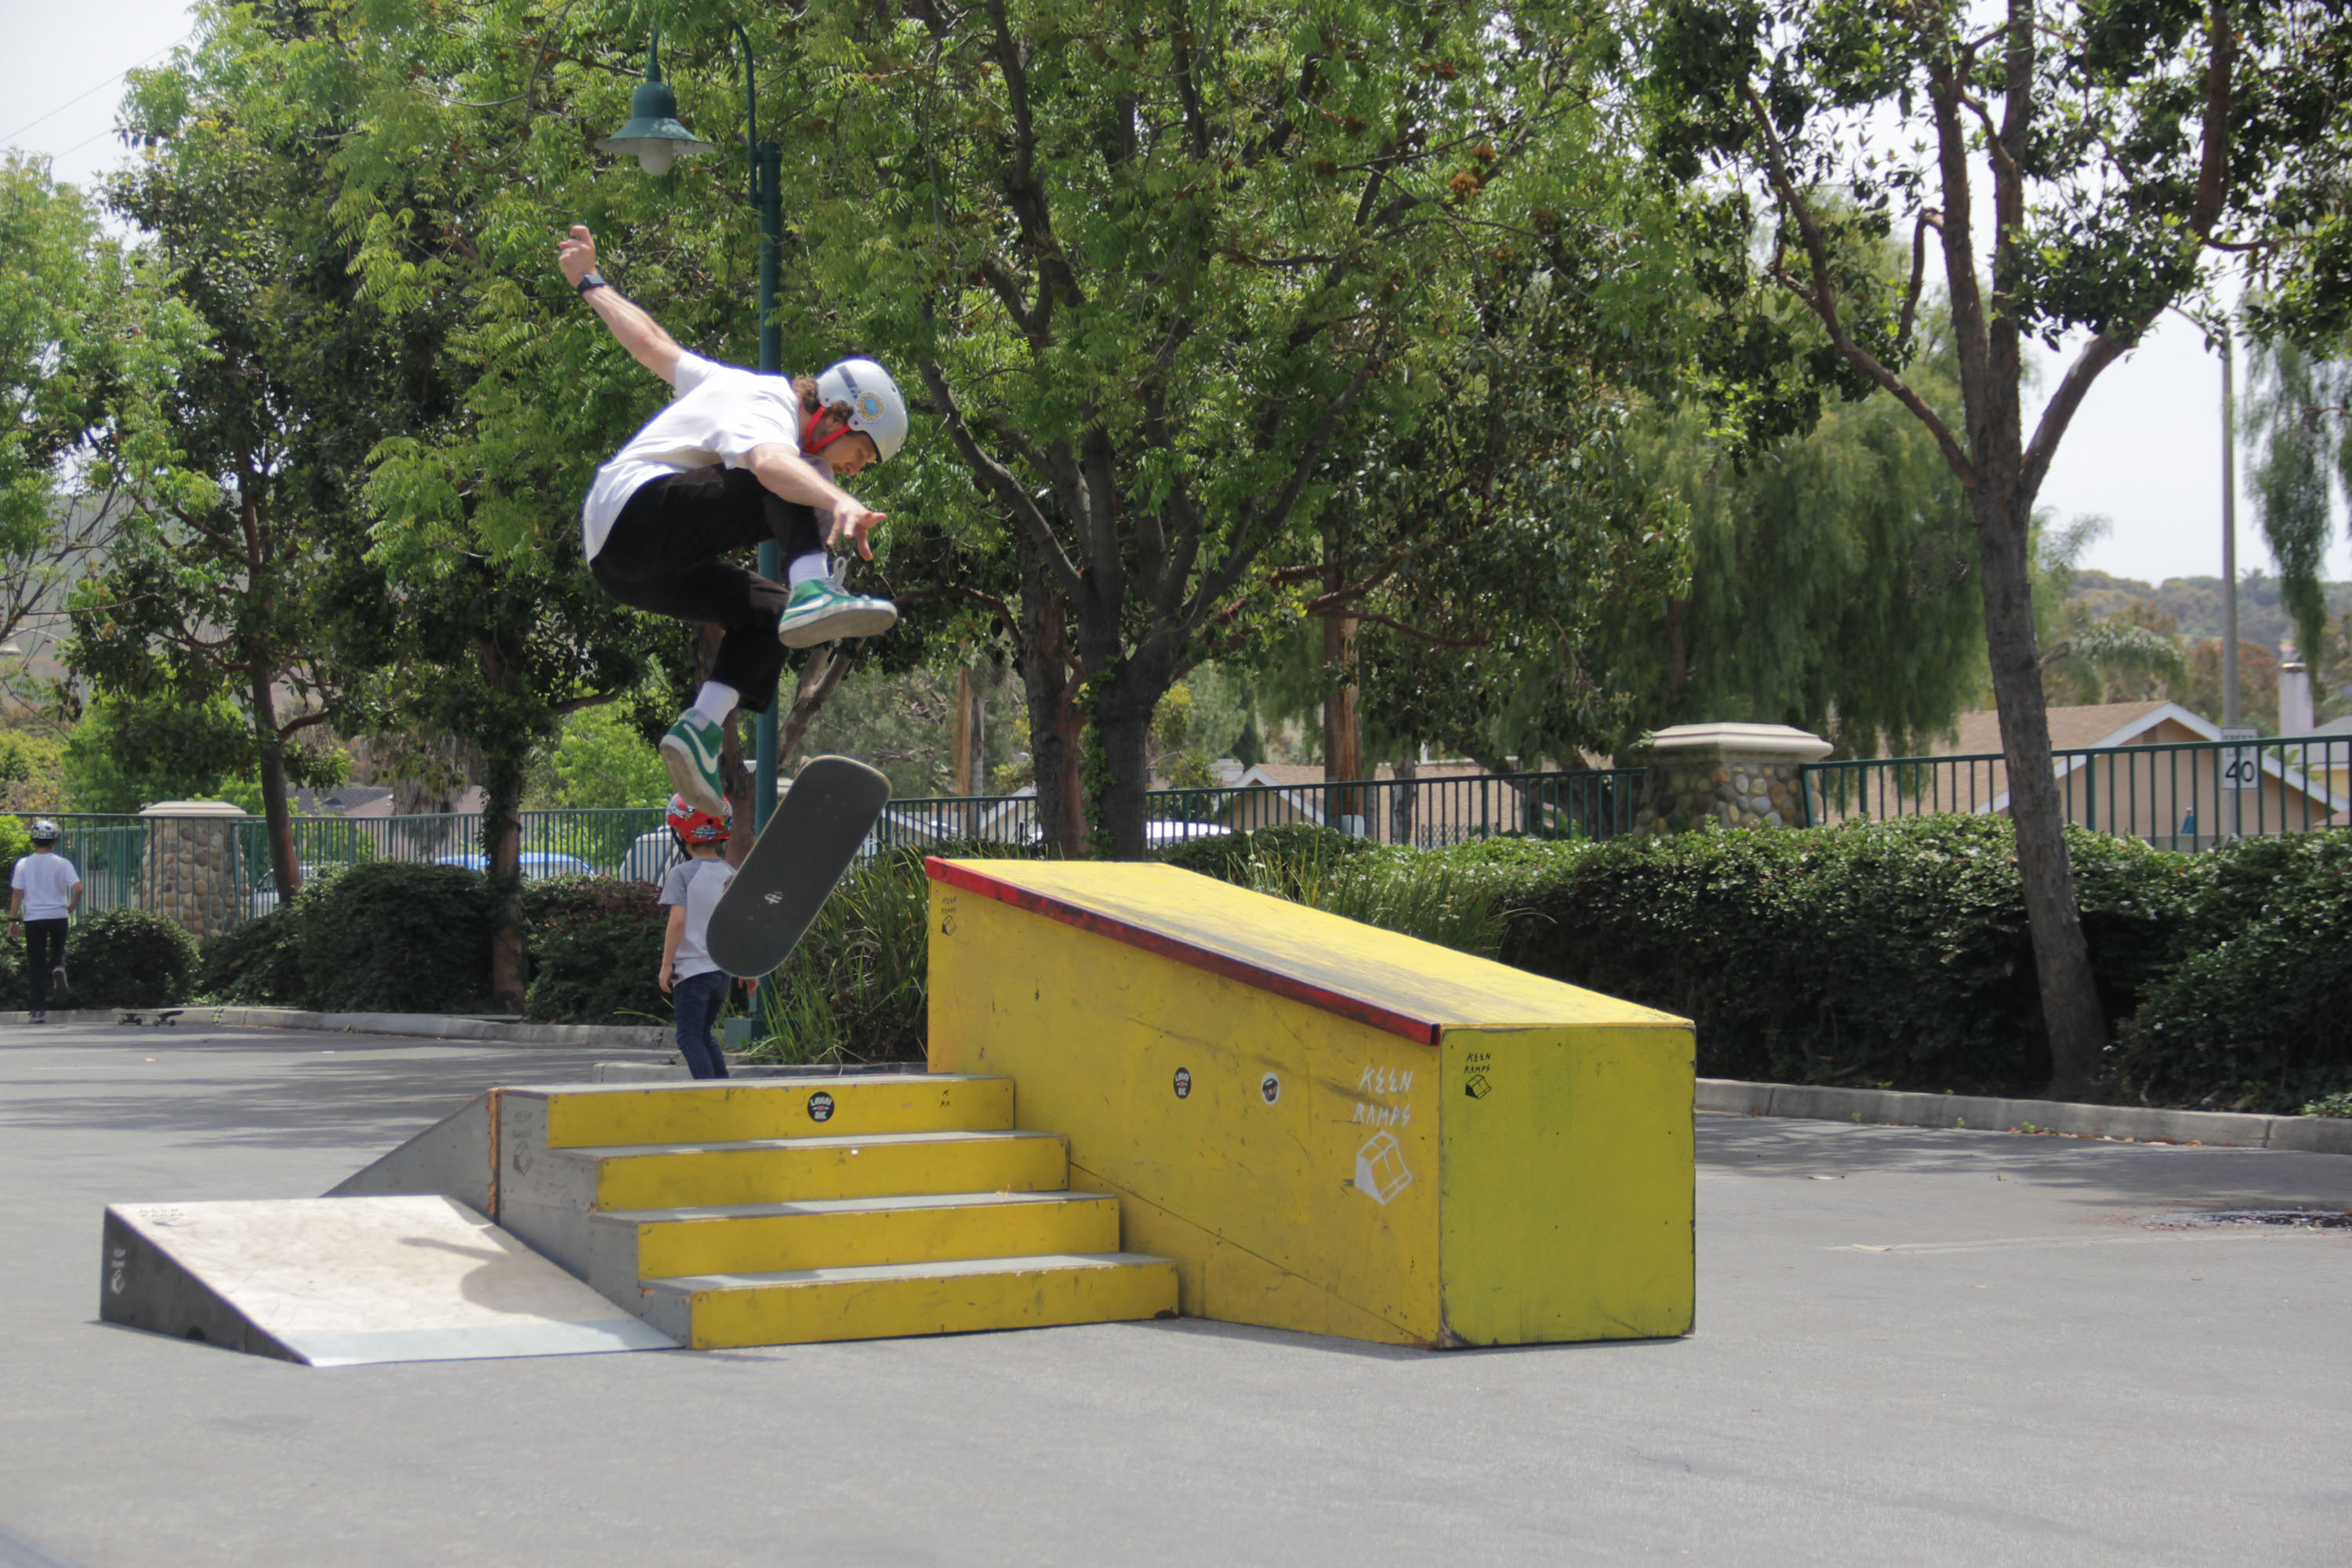 Chance Moreno, a 25-year-old Rancho Mission Viejo resident, gets some air while participating in the Spring 2019 Skate Jam at the San Juan Capistrano Community Center on Saturday, May 18. Photo: Shawn Raymundo